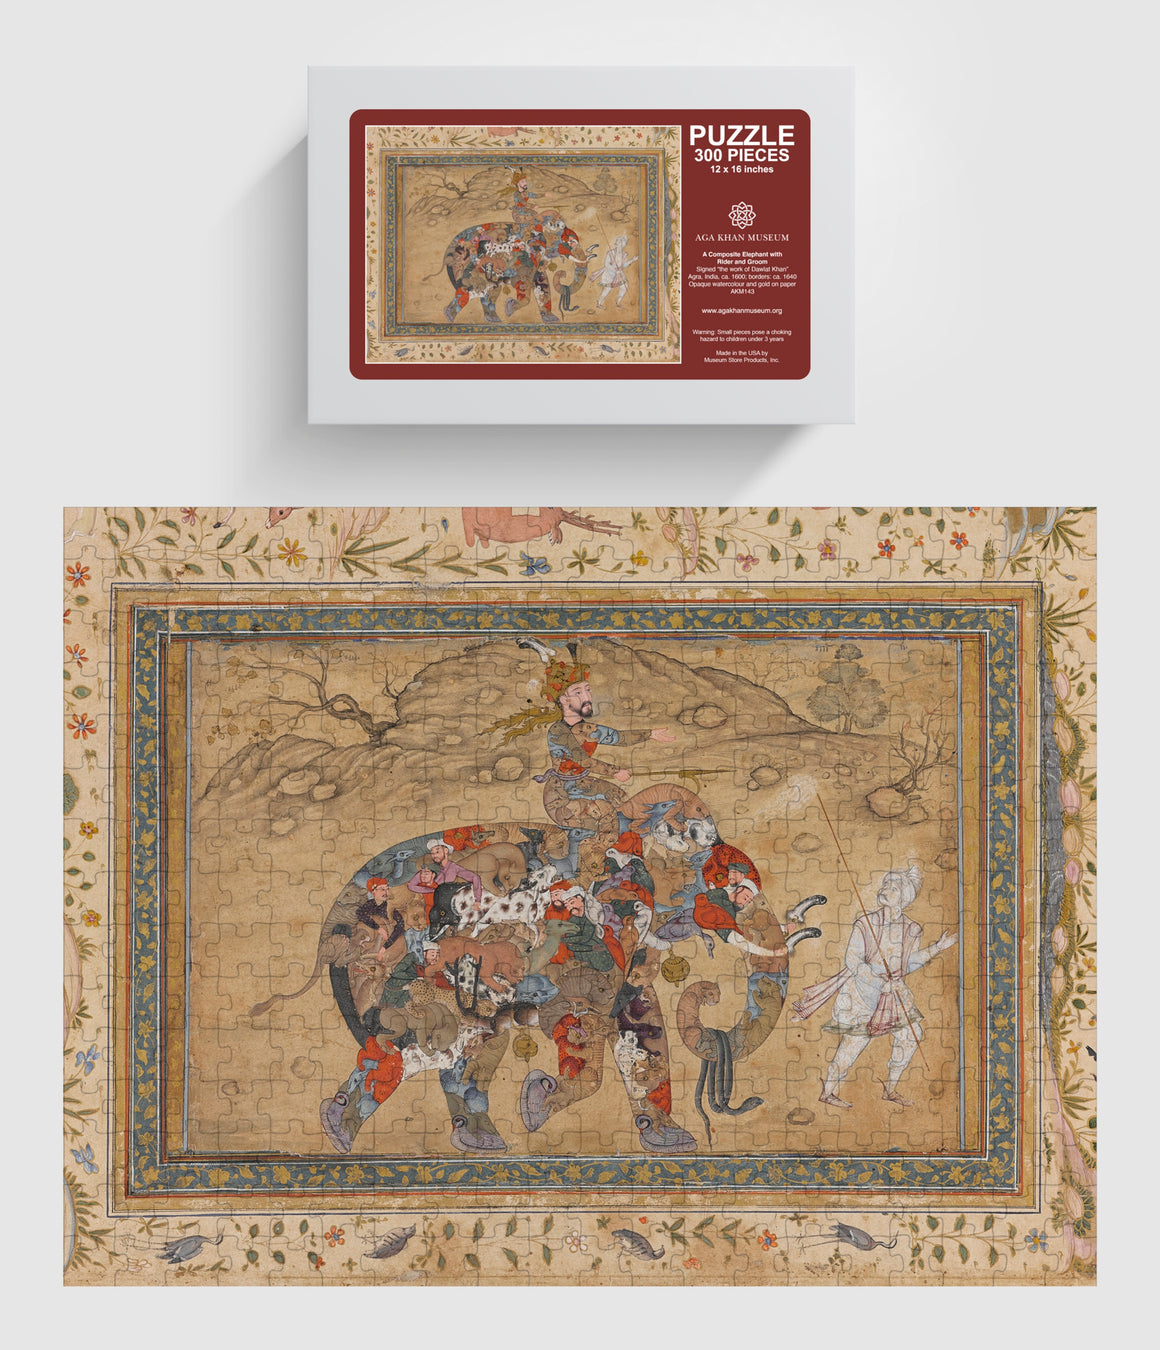 Aga Khan Museum 300 piece puzzle-Composite Elephant with Rider and Groom